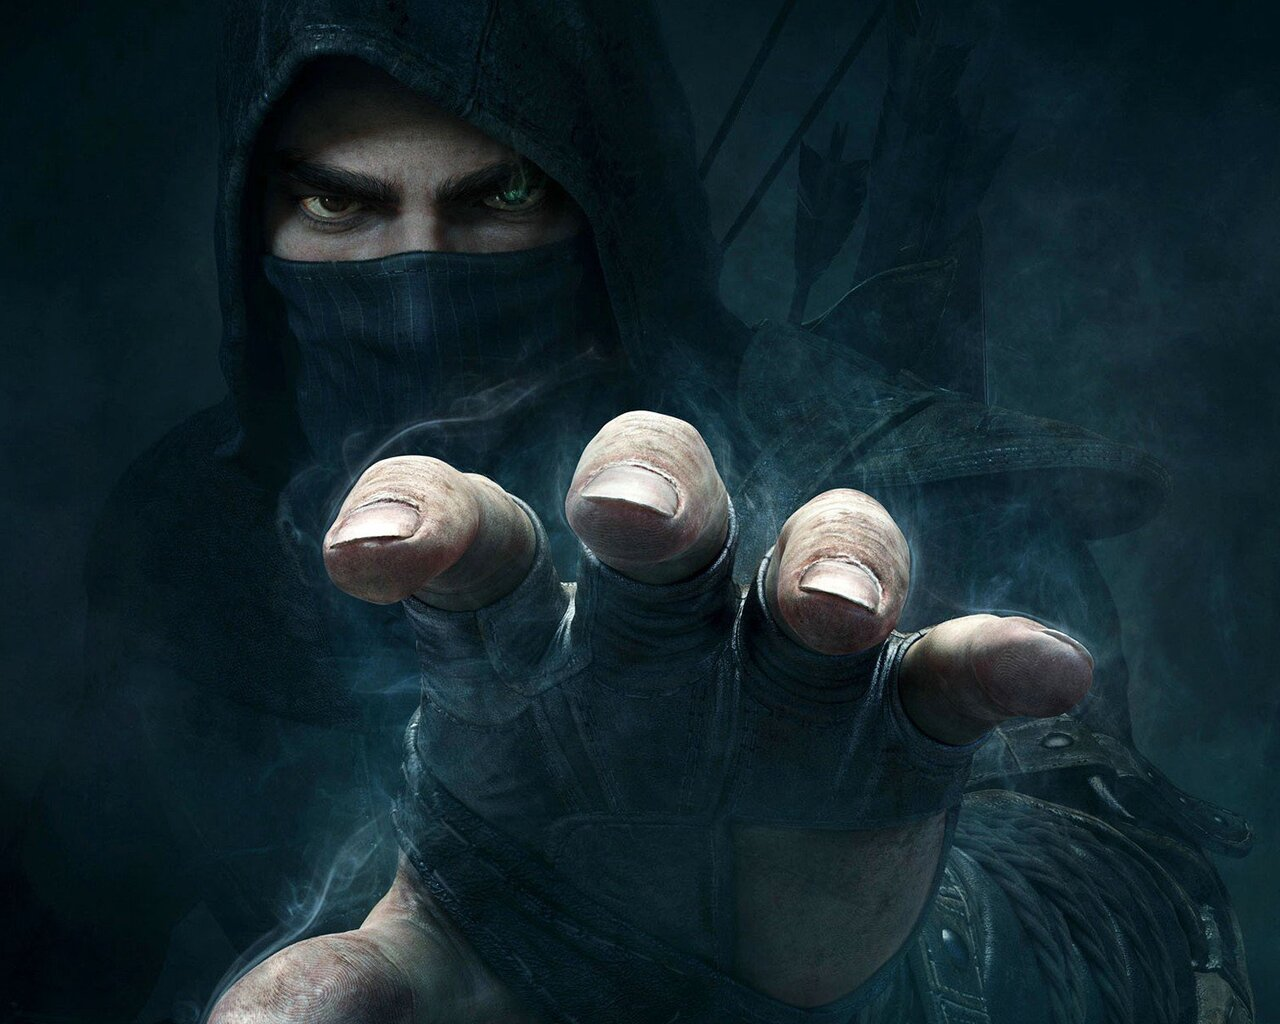 1280x1024 thief 1280x1024 resolution hd 4k wallpapers, images